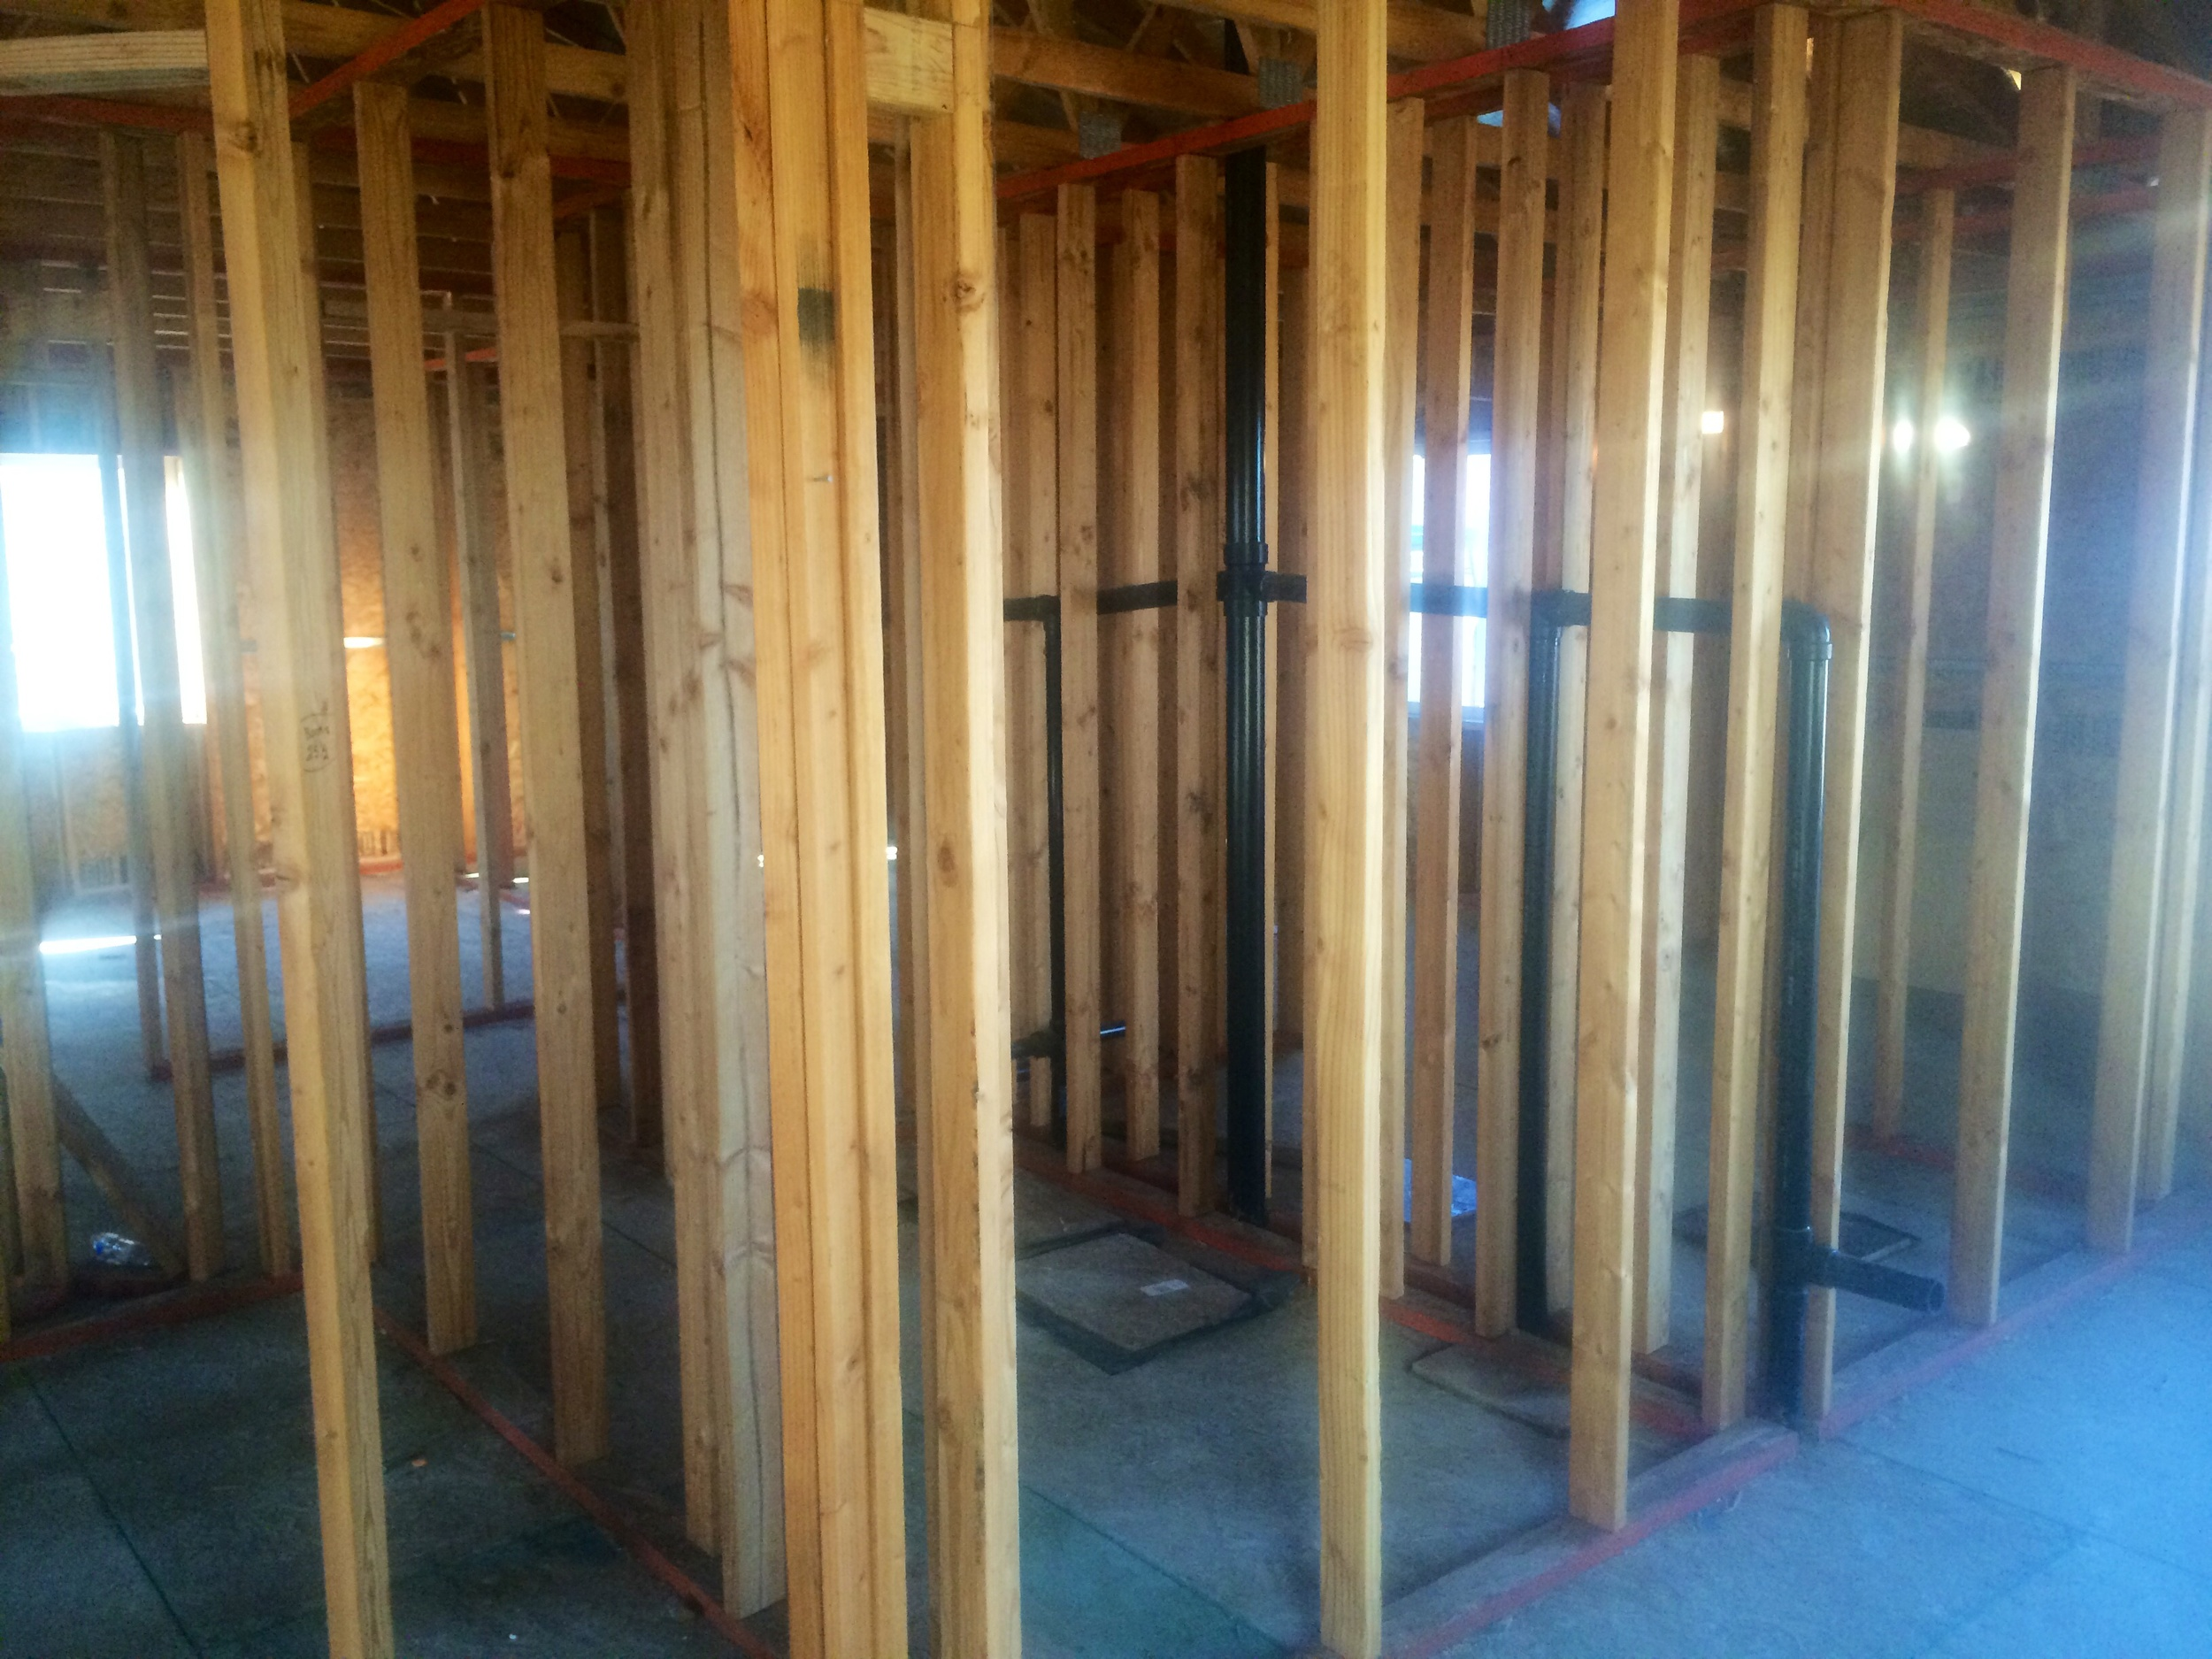 The black pipes for plumbing will serve the entire house; all located in one wall!